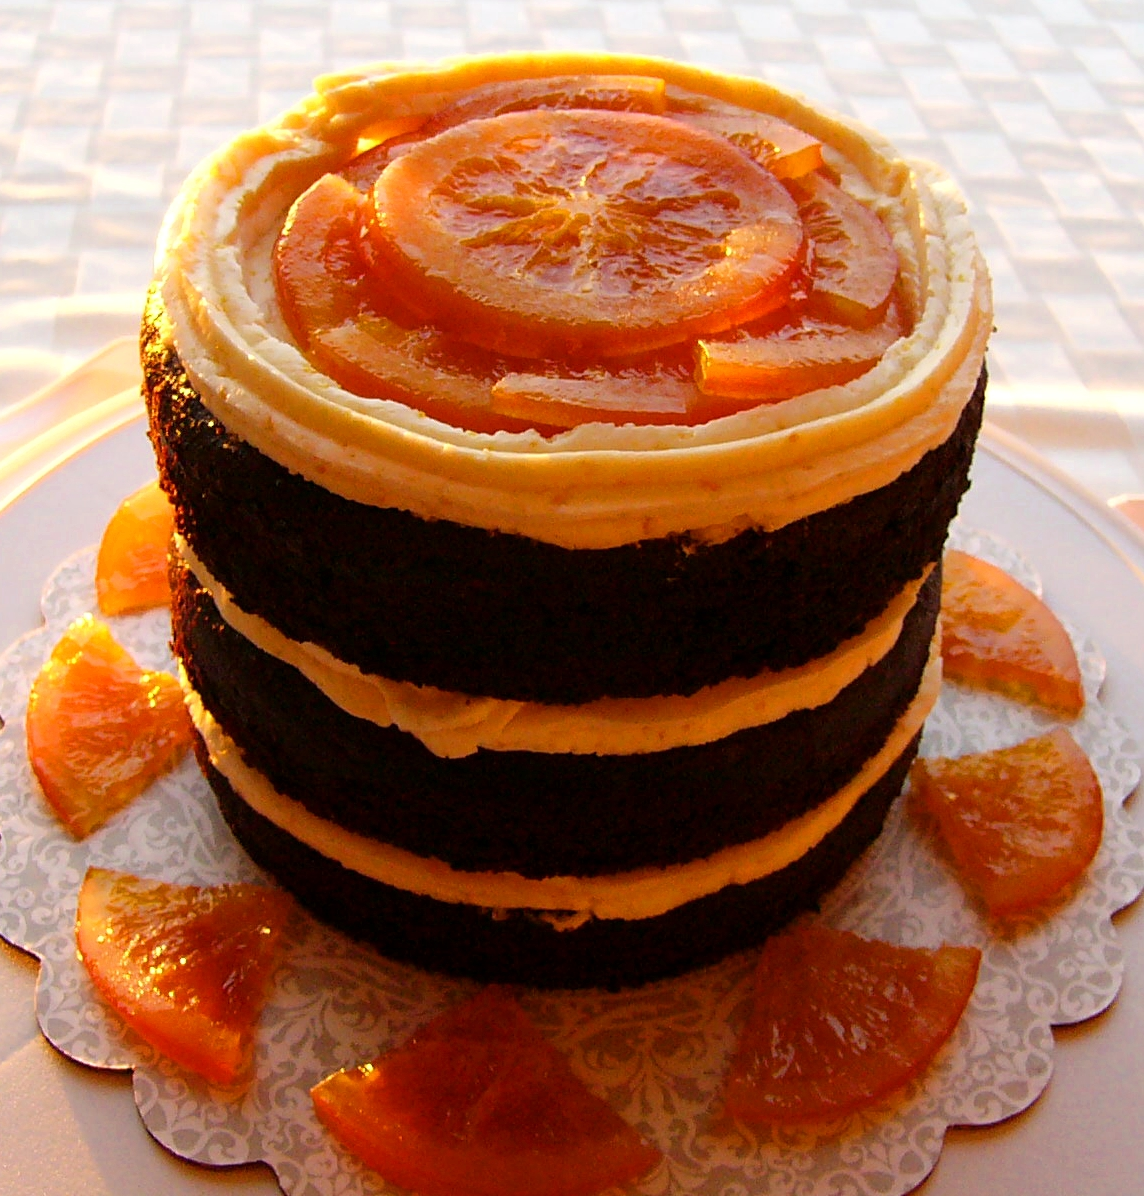 "Naked"" Chocolate Orange Cake 